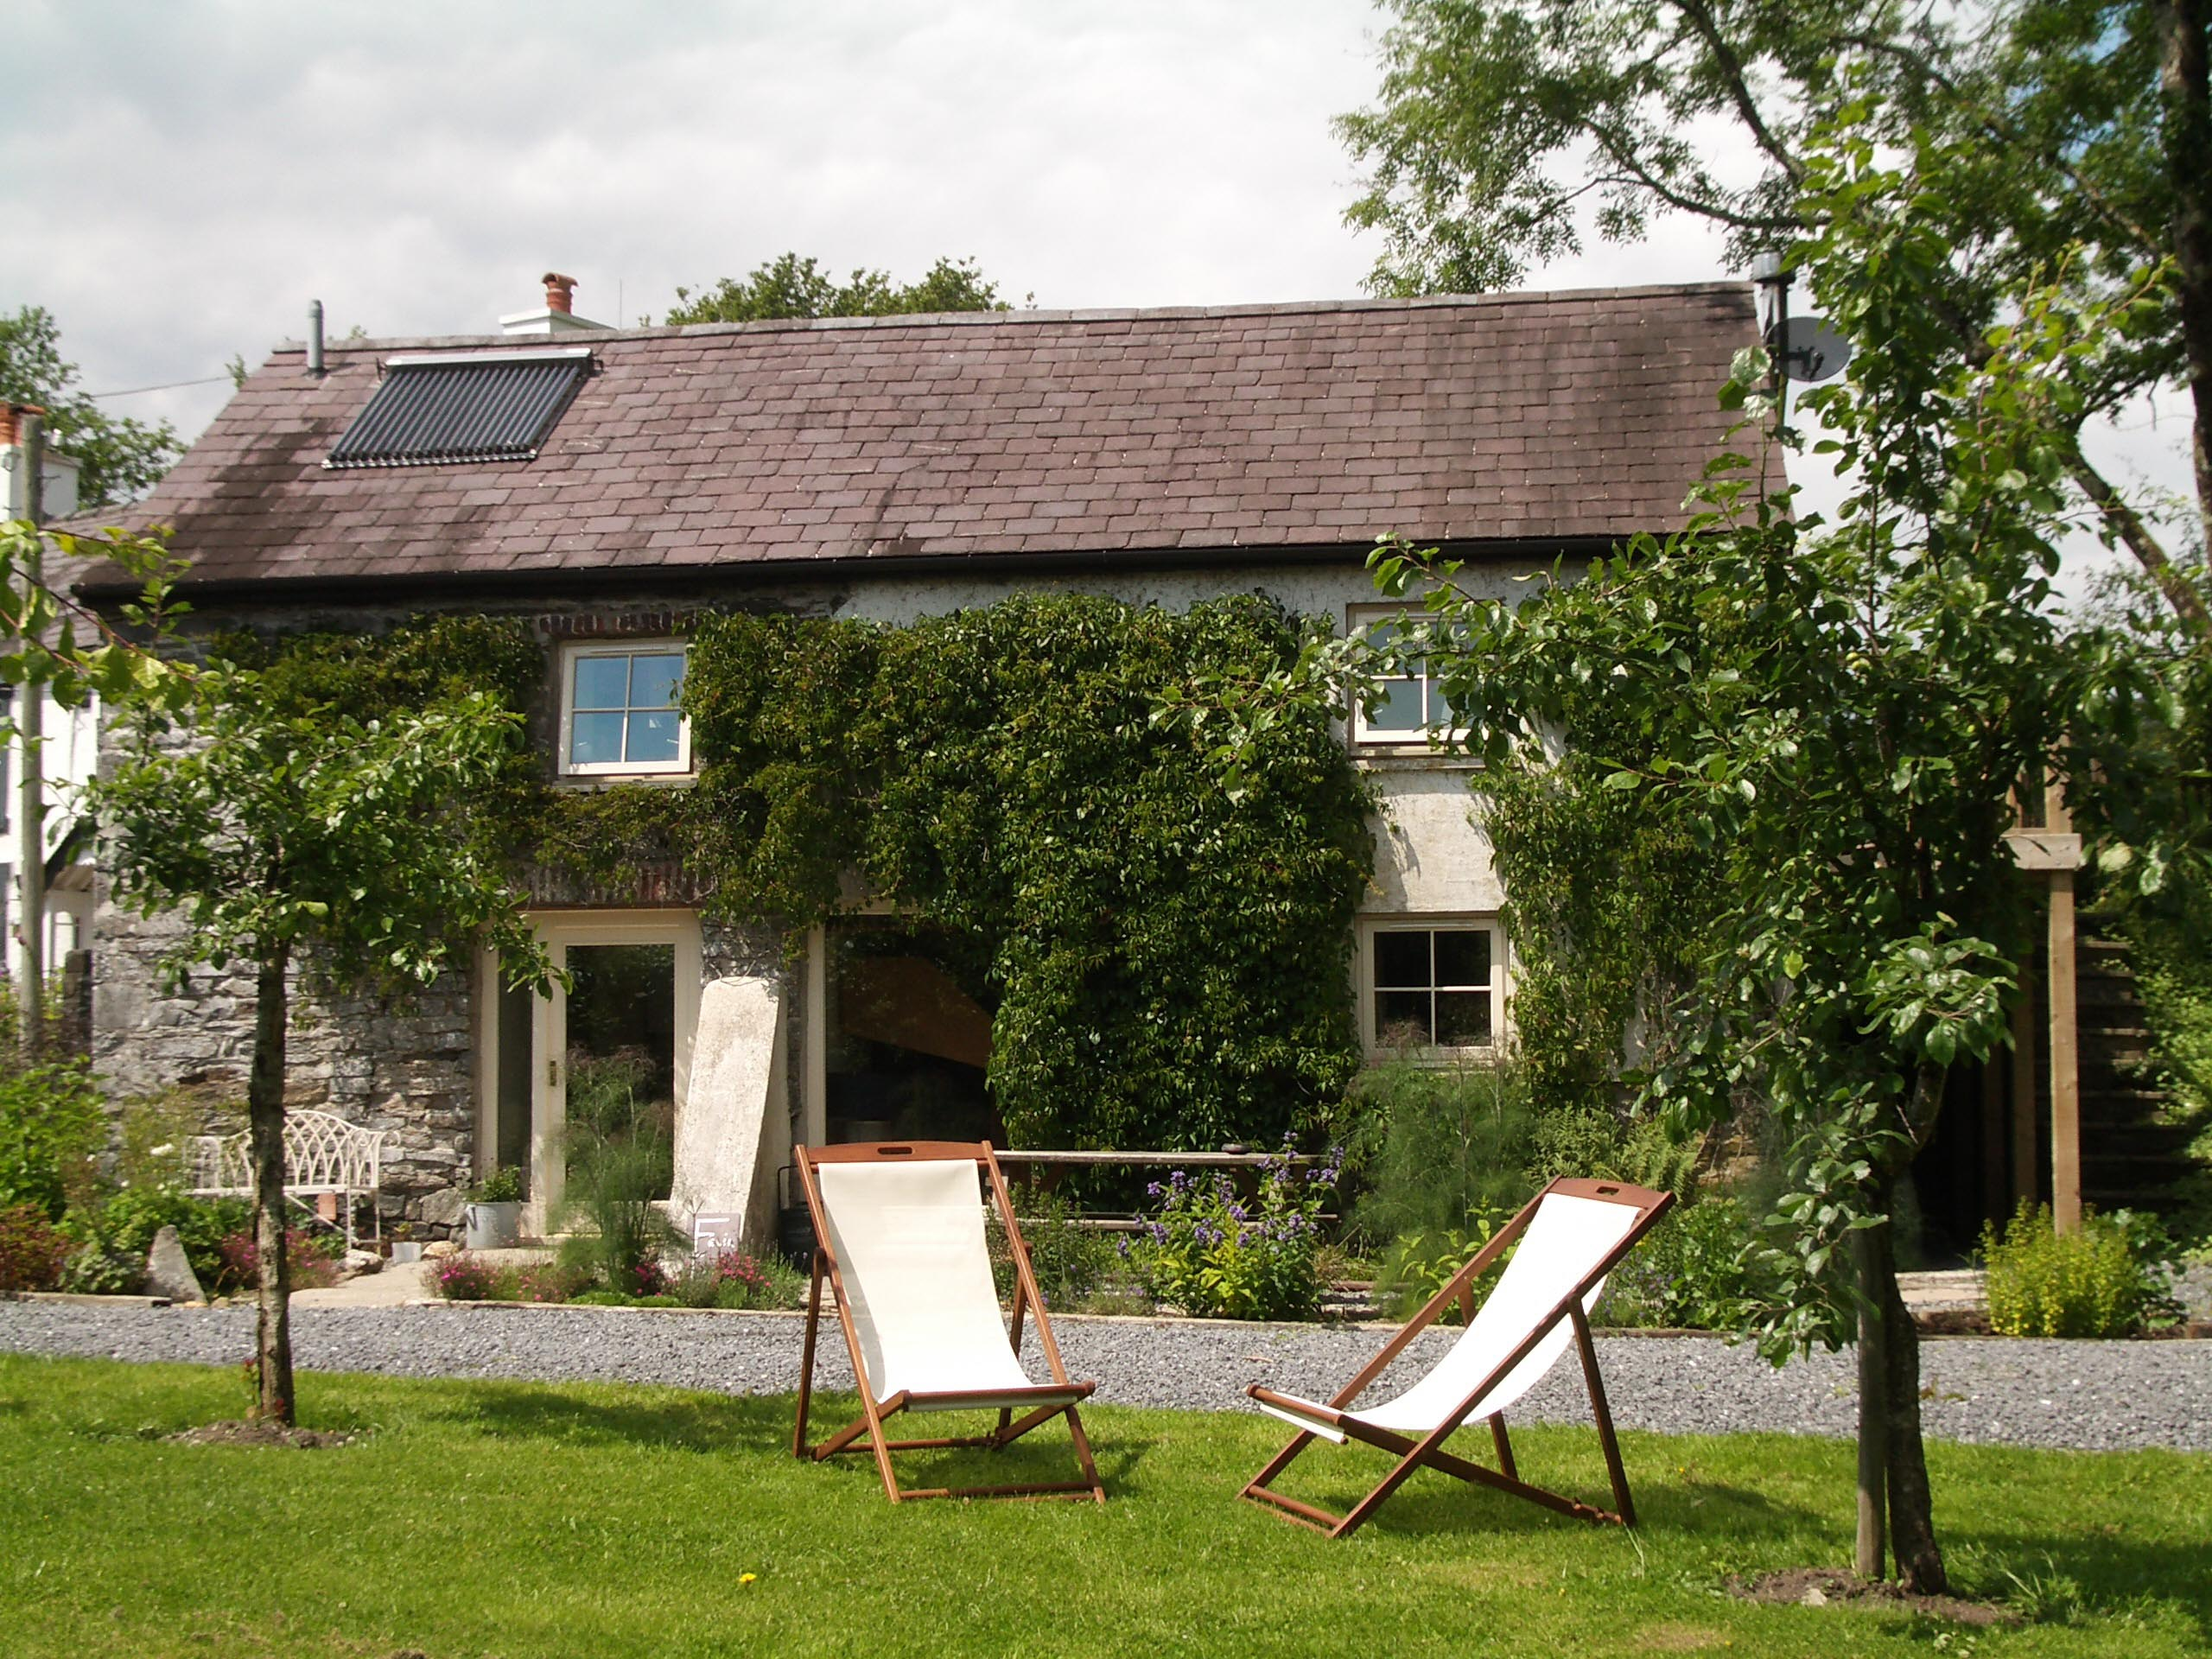 in mid wales rent cottage d property cottages to love york docking